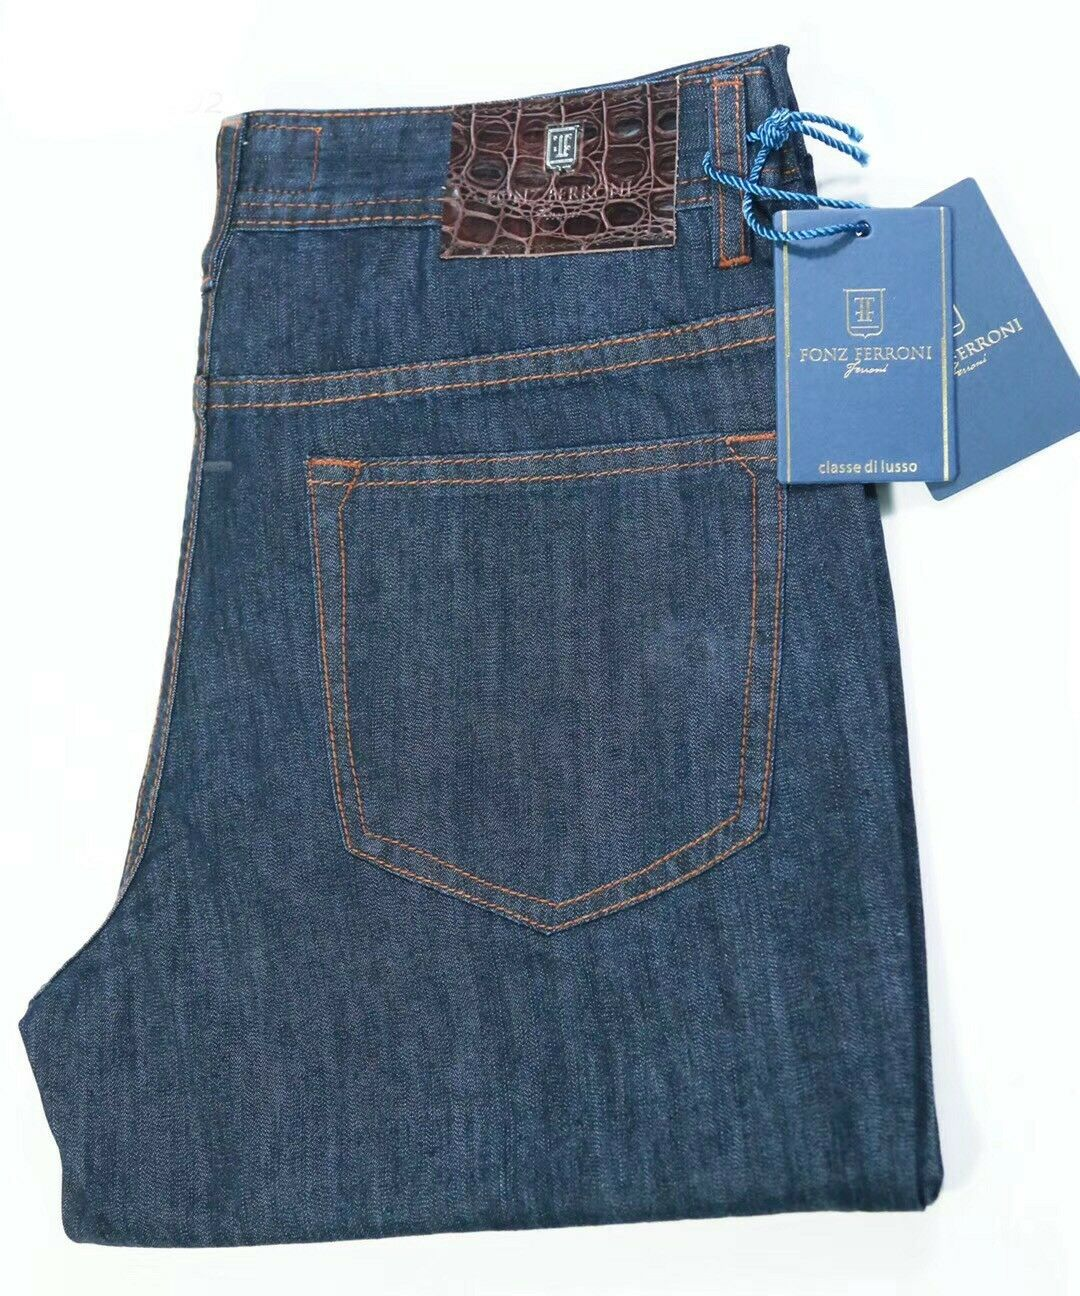 Fonz Ferroni Jeans bluee Cotton Brown Accents Leather Patch Mdl JFS-ON902 Size 33